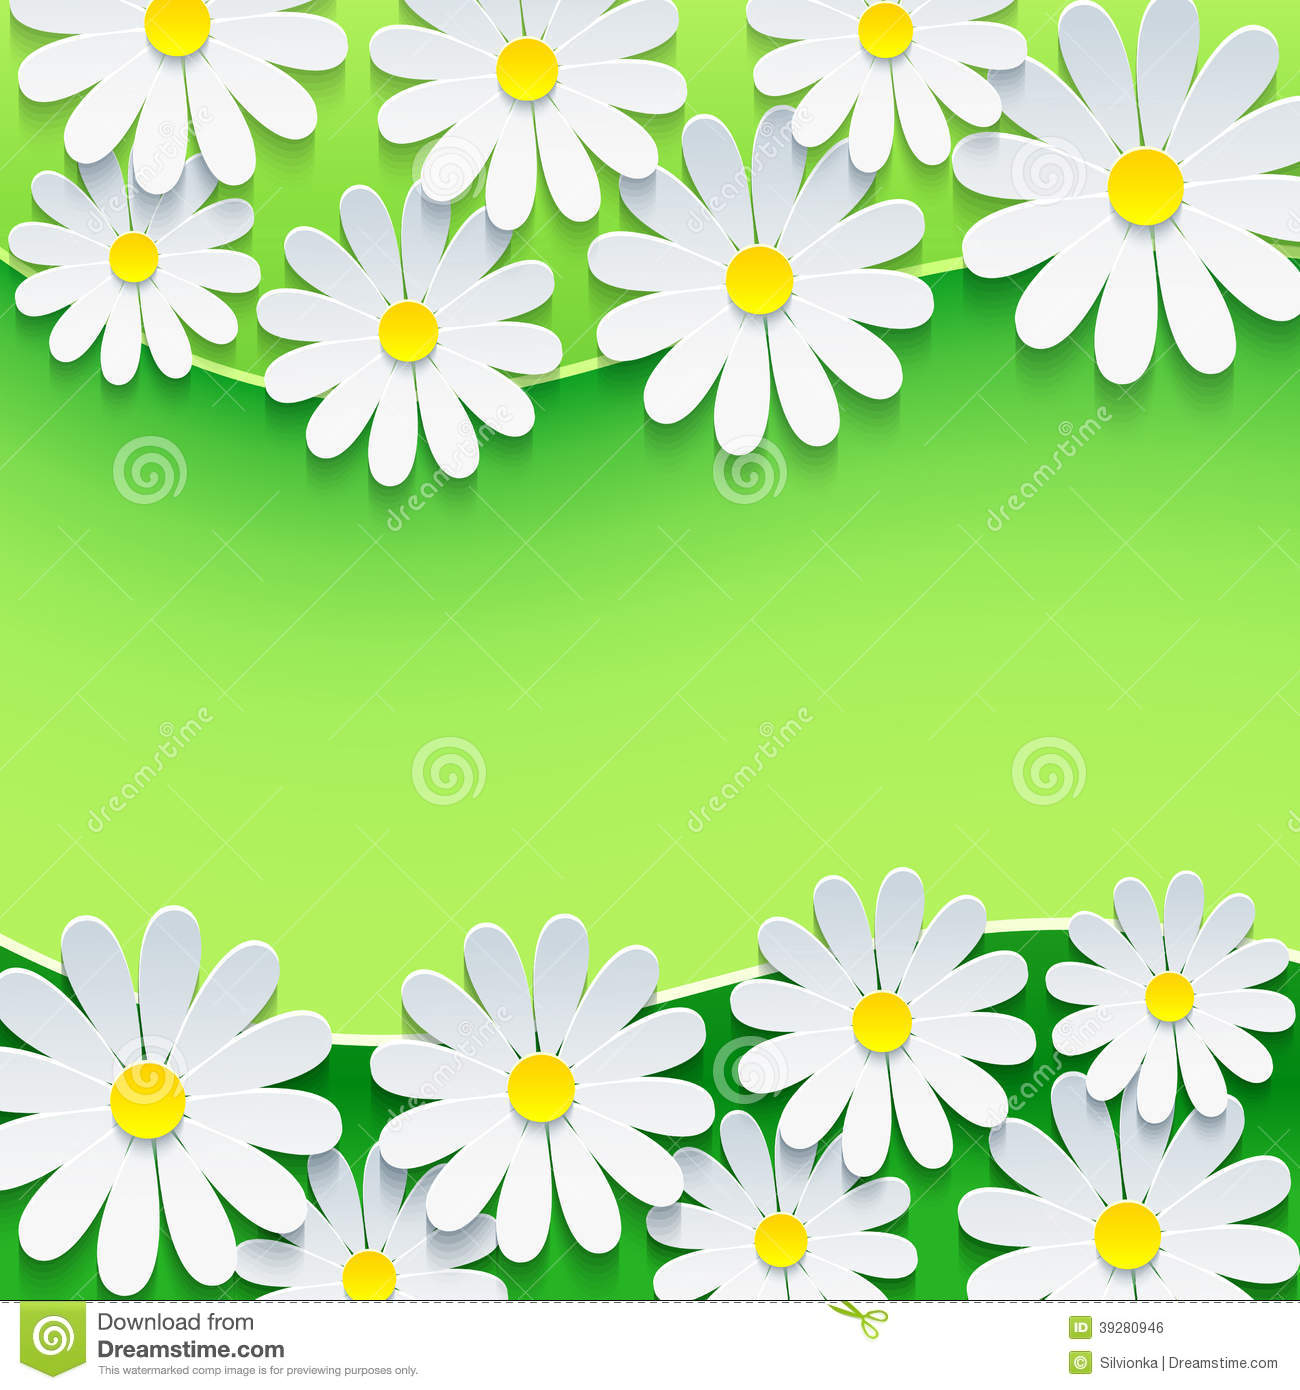 free green floral frame - photo #43